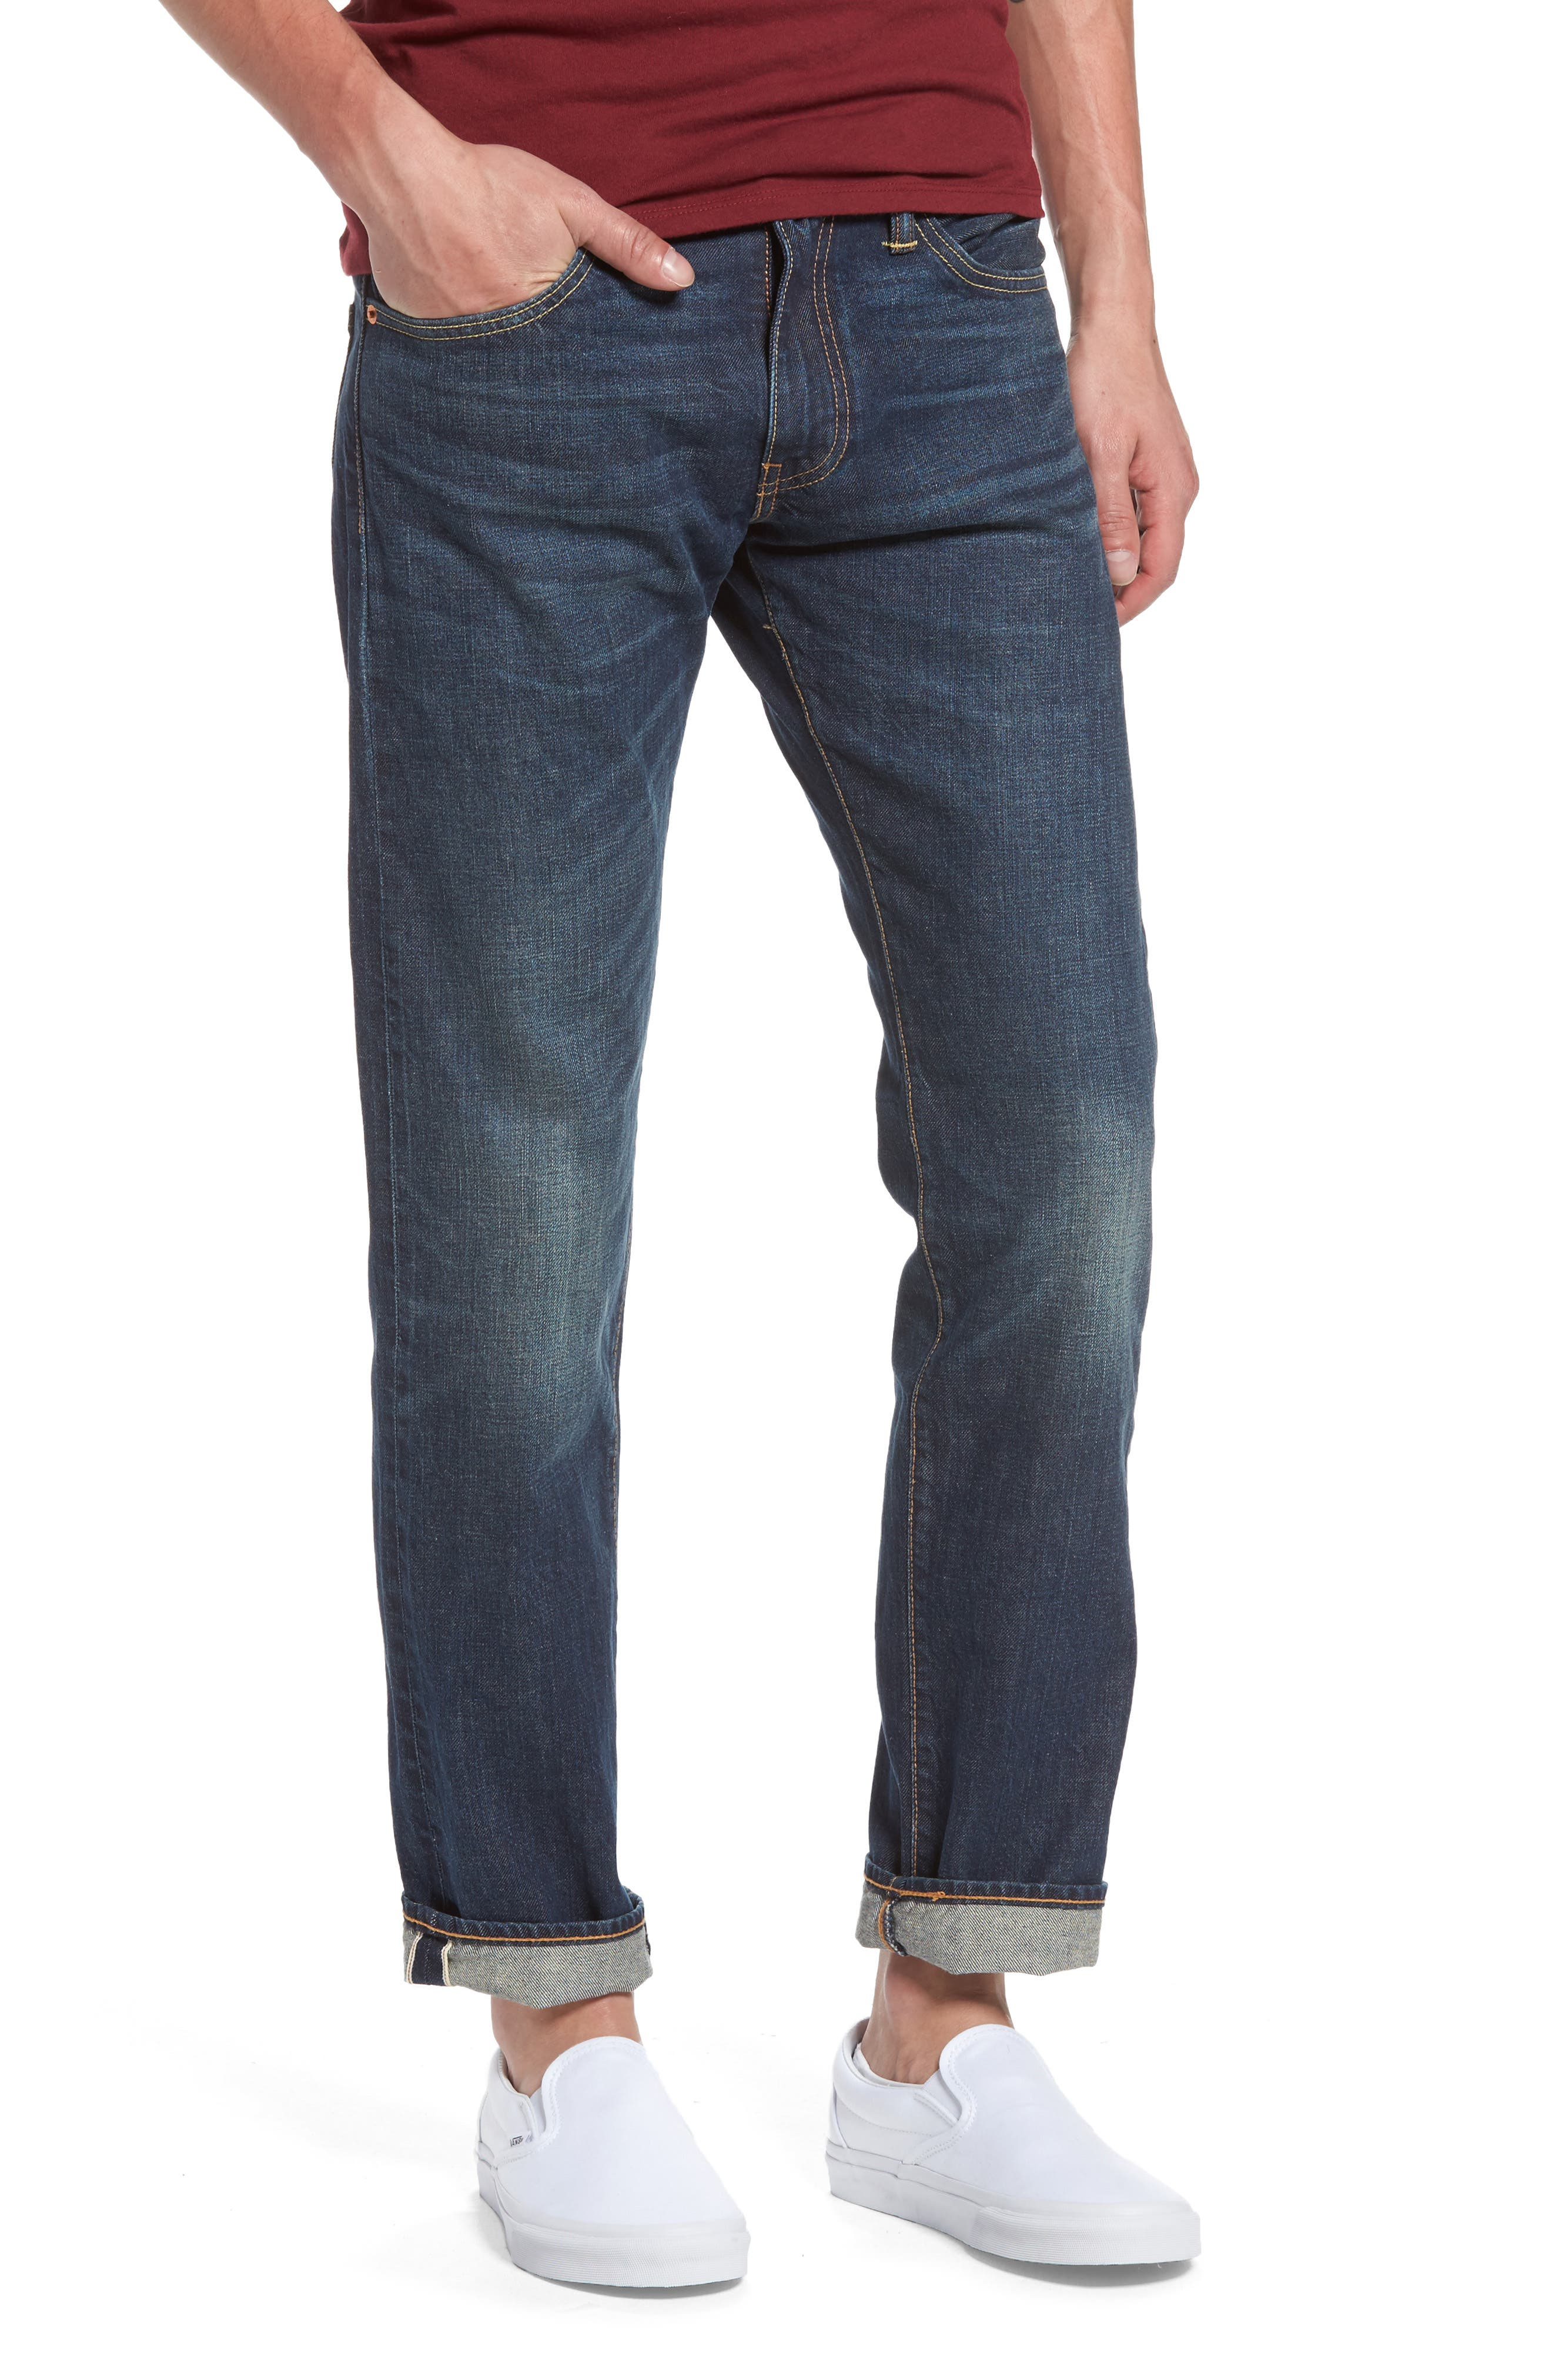 Main Image - Levi's® 511™ Slim Fit Jeans (Stang)